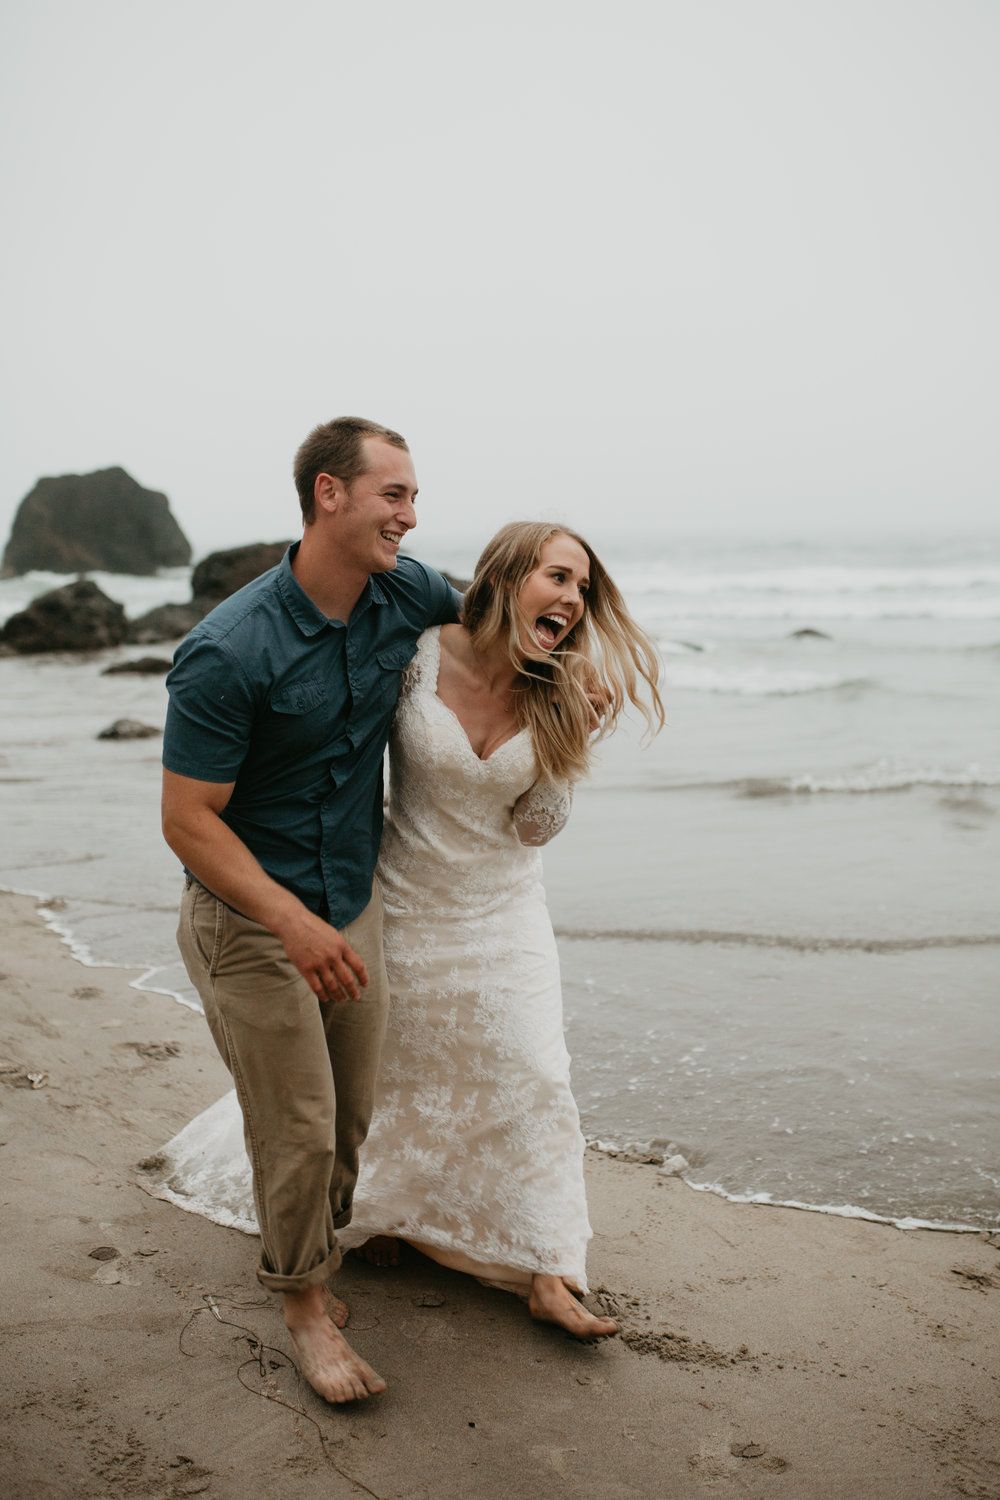 nicole-daacke-photography-ecola-state-park-oregon-elopement-bridal-photos-photographer-for-cannon-beach-elopement-oregon-coast-elopement-photographer-foggy-summer-elopement-cannon-beach-best-adventure-elopement-photographer-7124.jpg